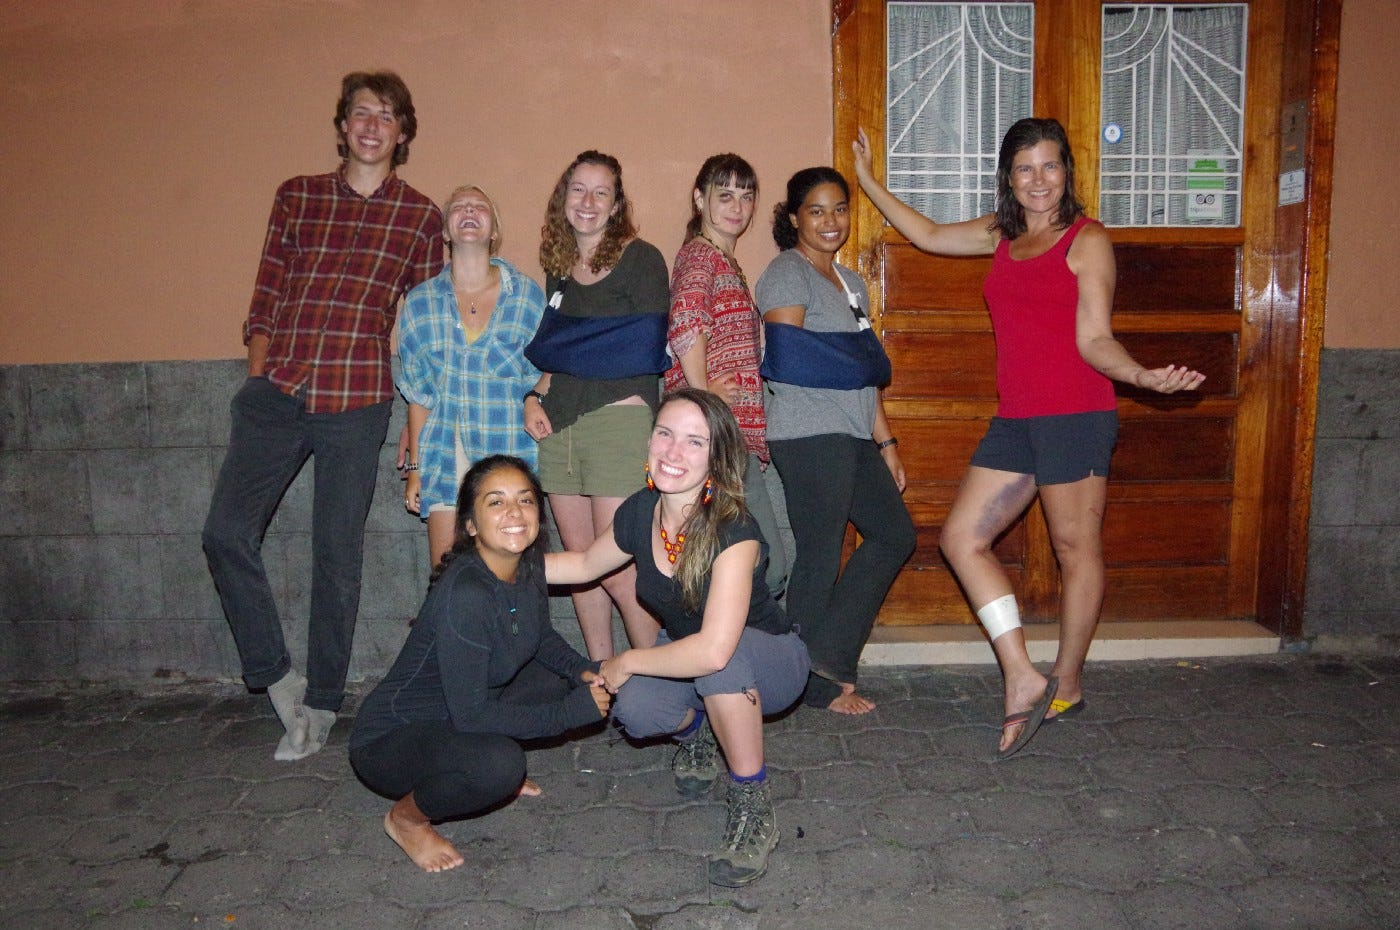 In Quito outside our hostel, 4 days after the accident. Clockwise from left: Rowan, Rachel, Lily, Kirstin, Odette, Heather, Dorrie, Val. Photo by Bret.